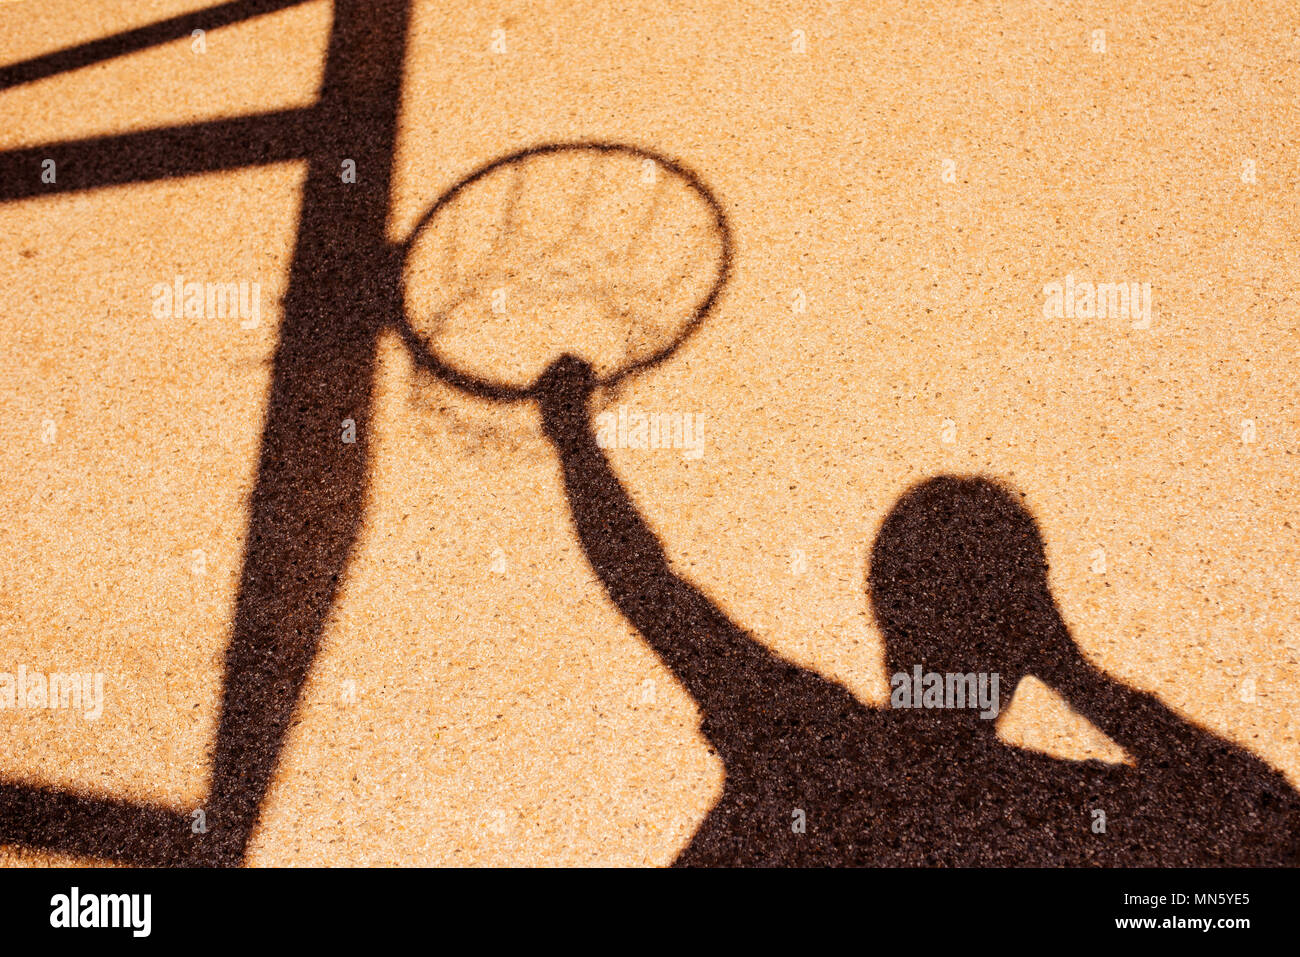 Shadow of male basketball player in slam dunk pose, holding the hoops - Stock Image